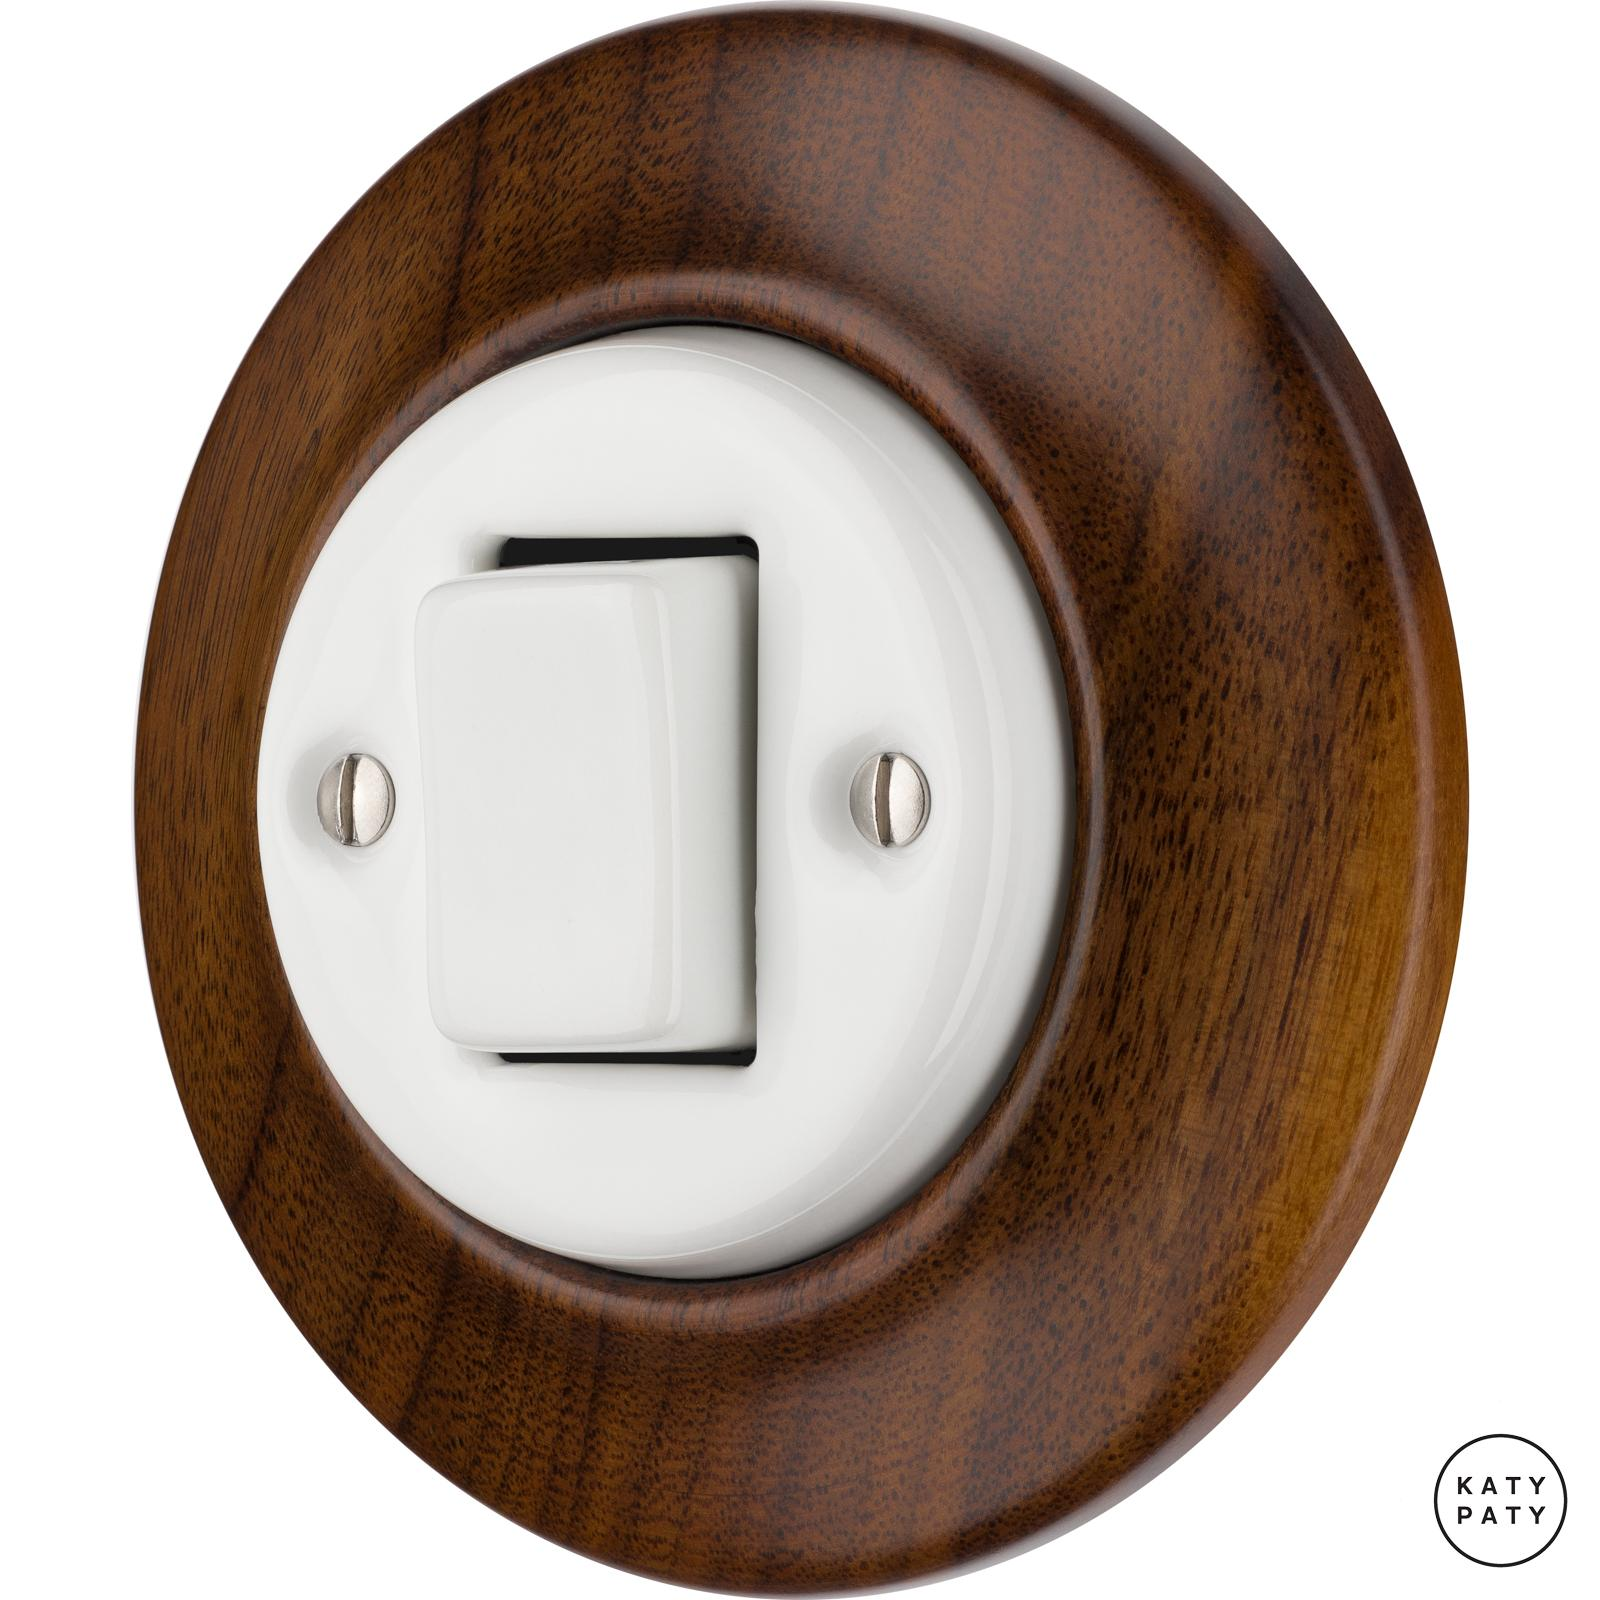 Porcelain switches - 1 gang - FAT ()  - NUCLEUS | Katy Paty